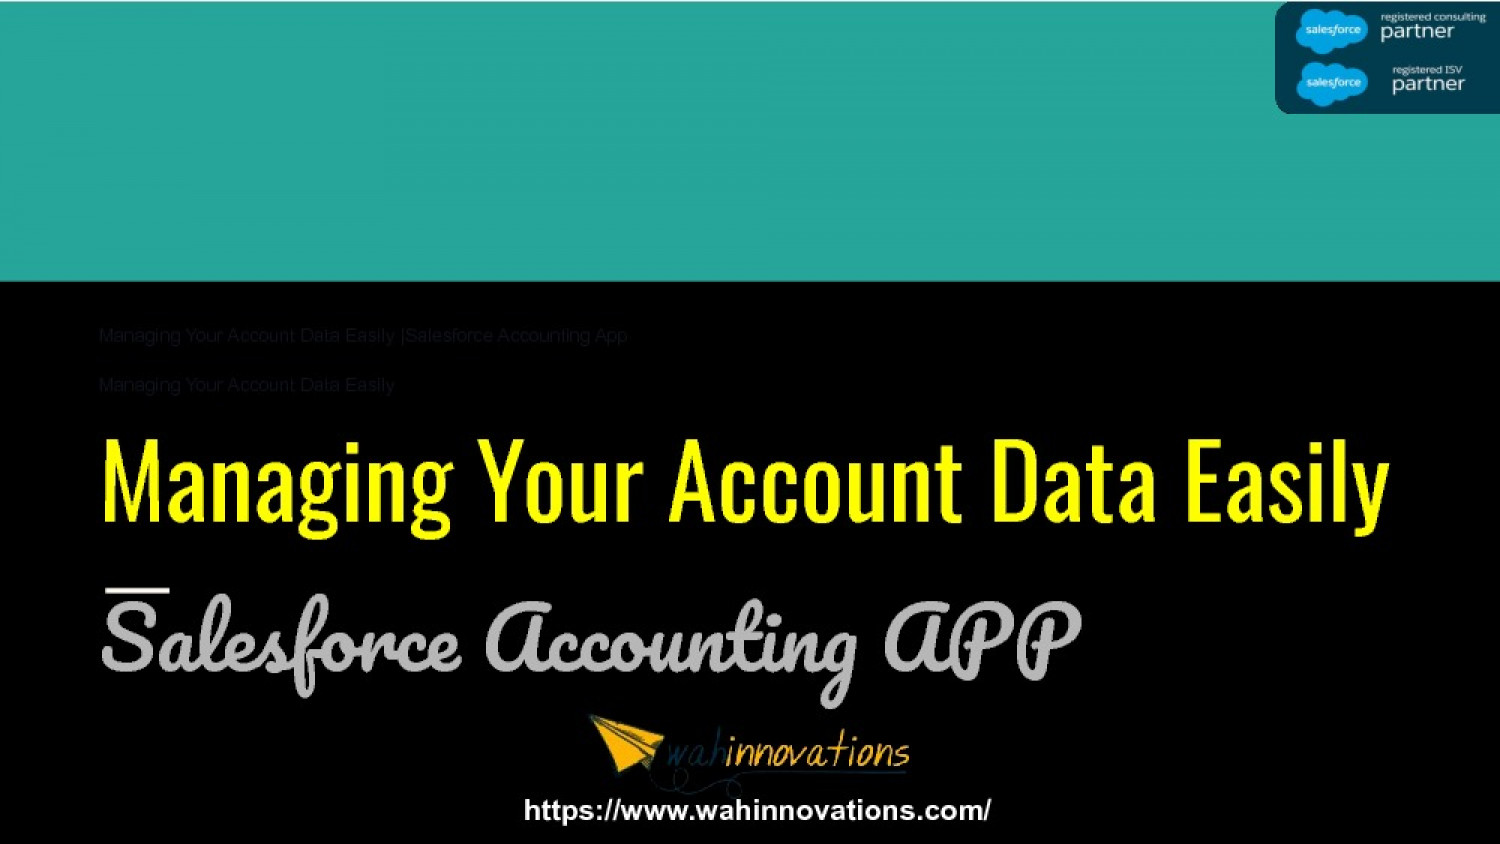 Managing Your Account Data Easily  Salesforce Accounting App  Accounting App for Salesforce Infographic